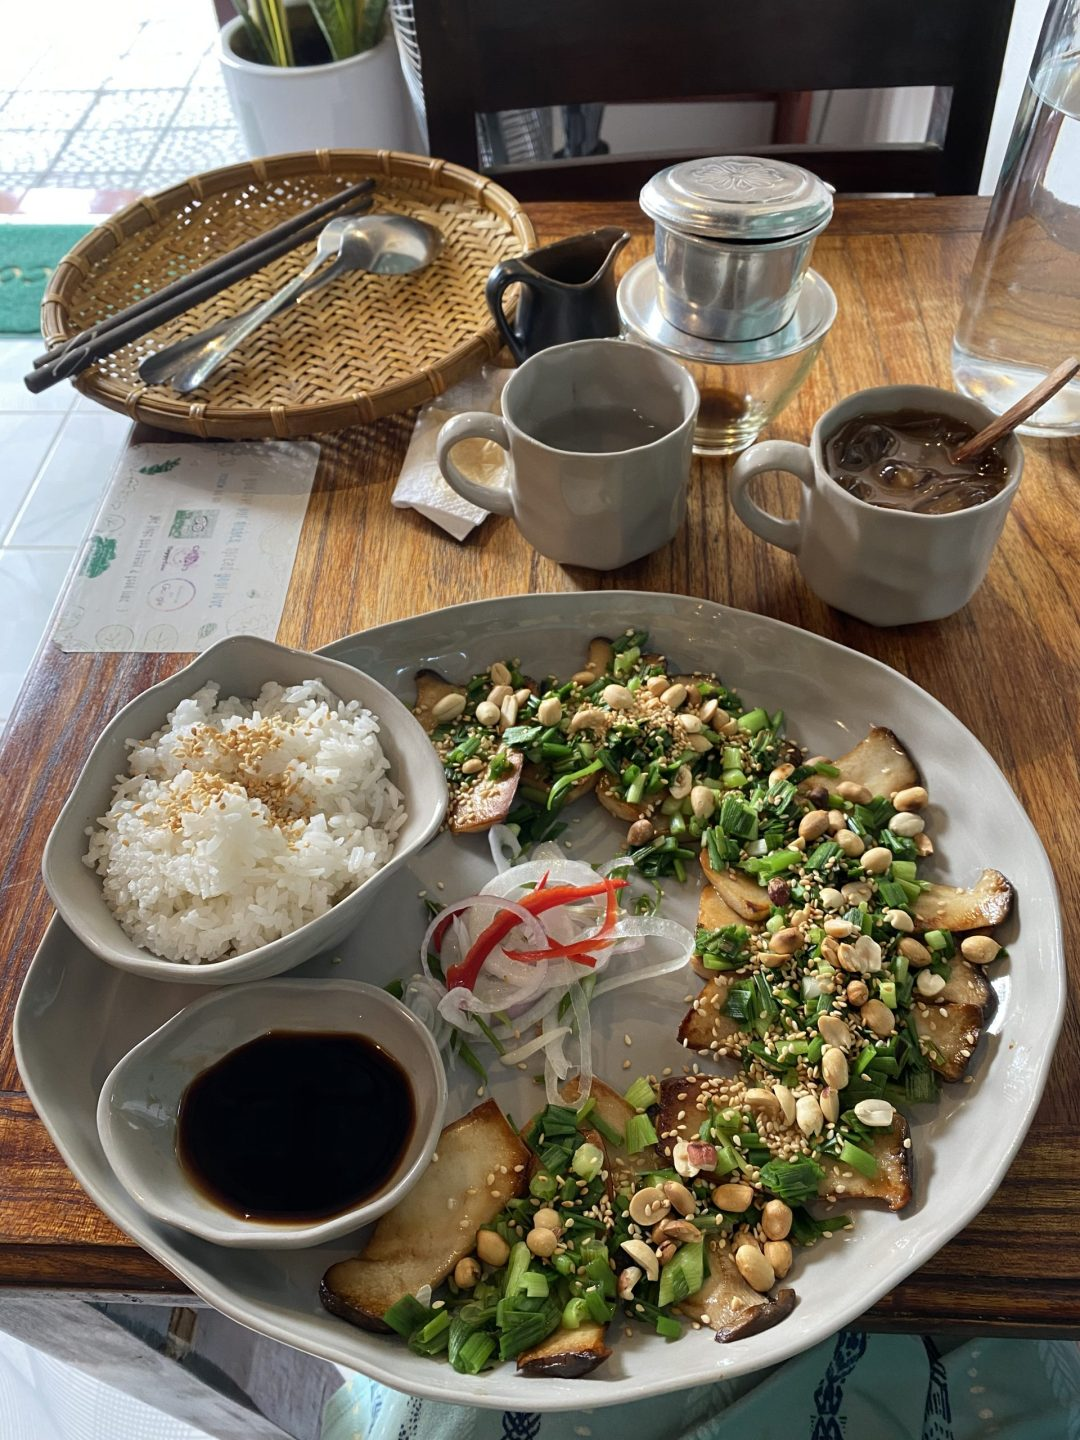 grey plate with mushrooms, peanuts, green onion, and rice